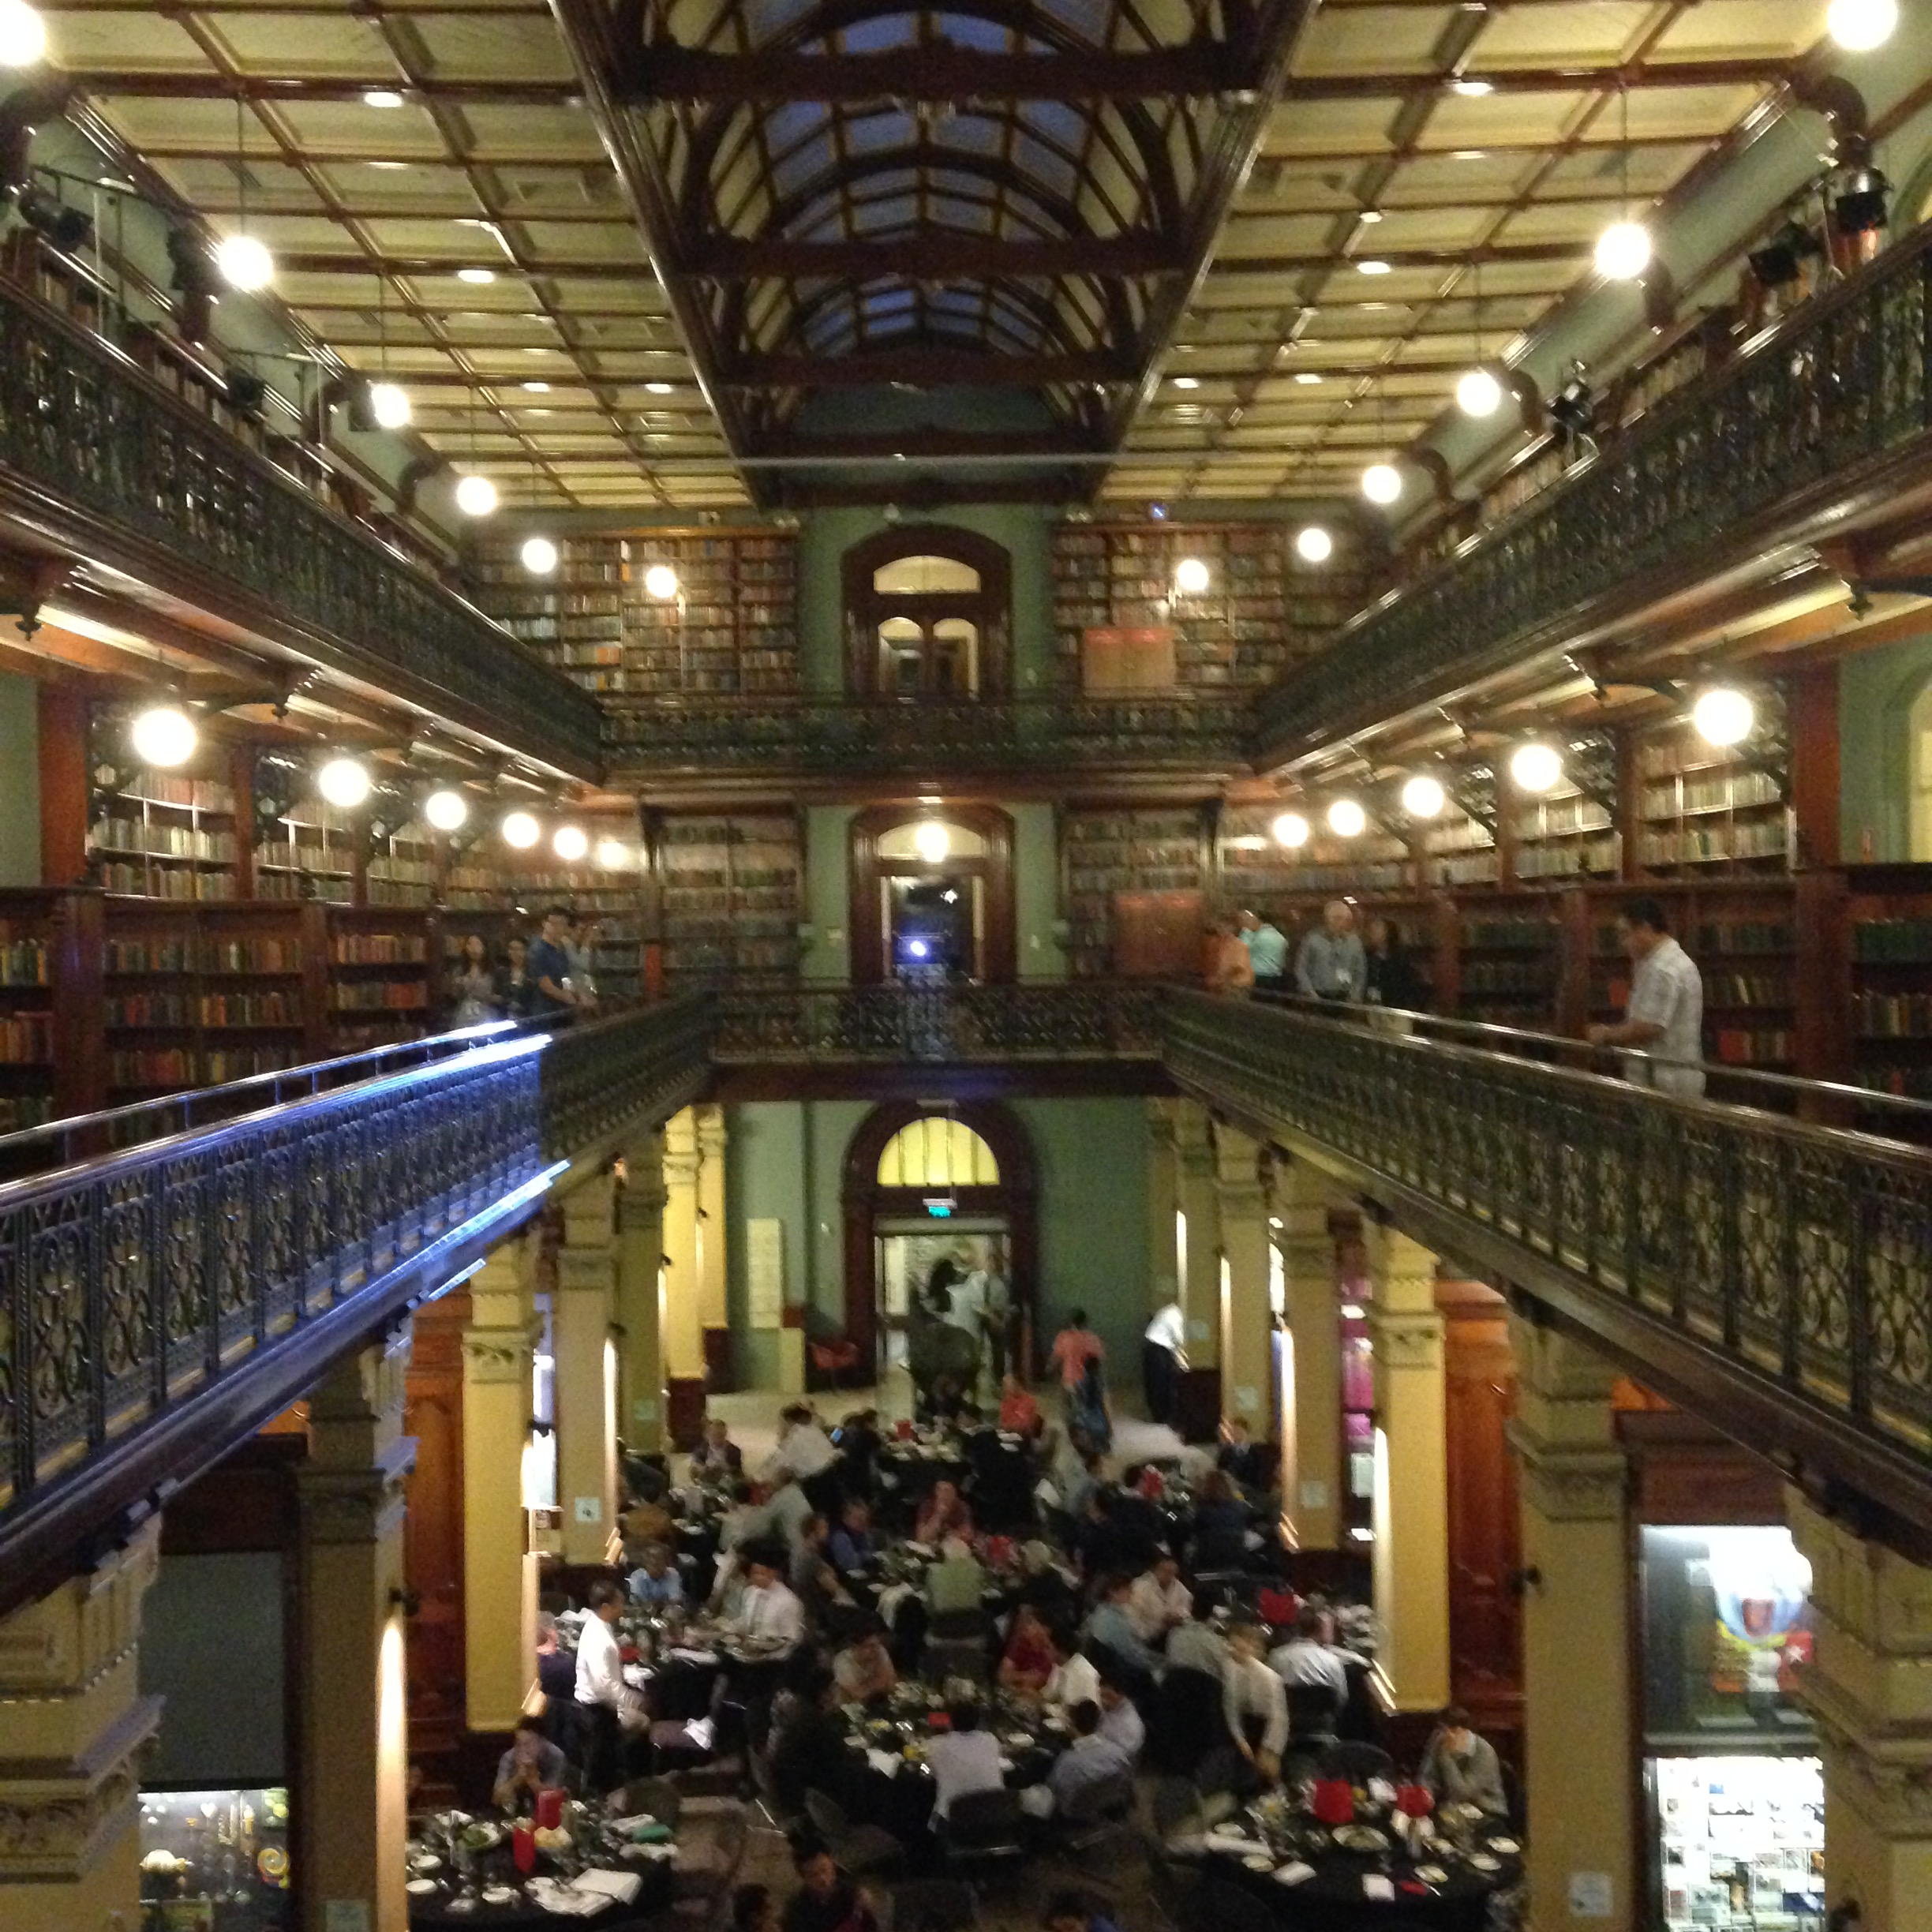 Conference dinner at the State Library of South Australia